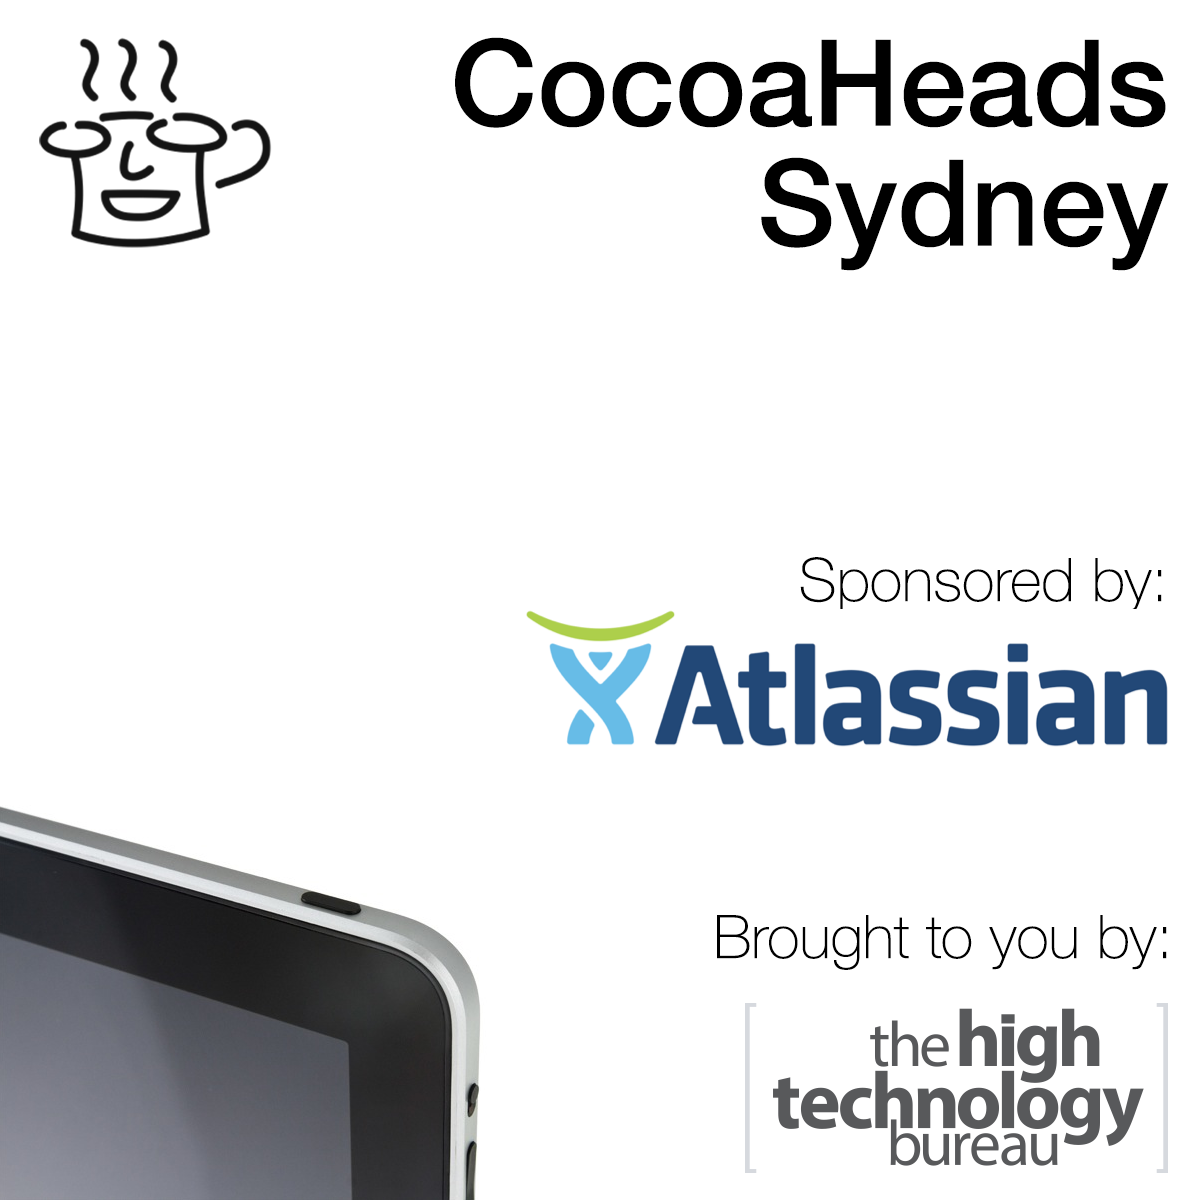 Video – Sydney CocoaHeads